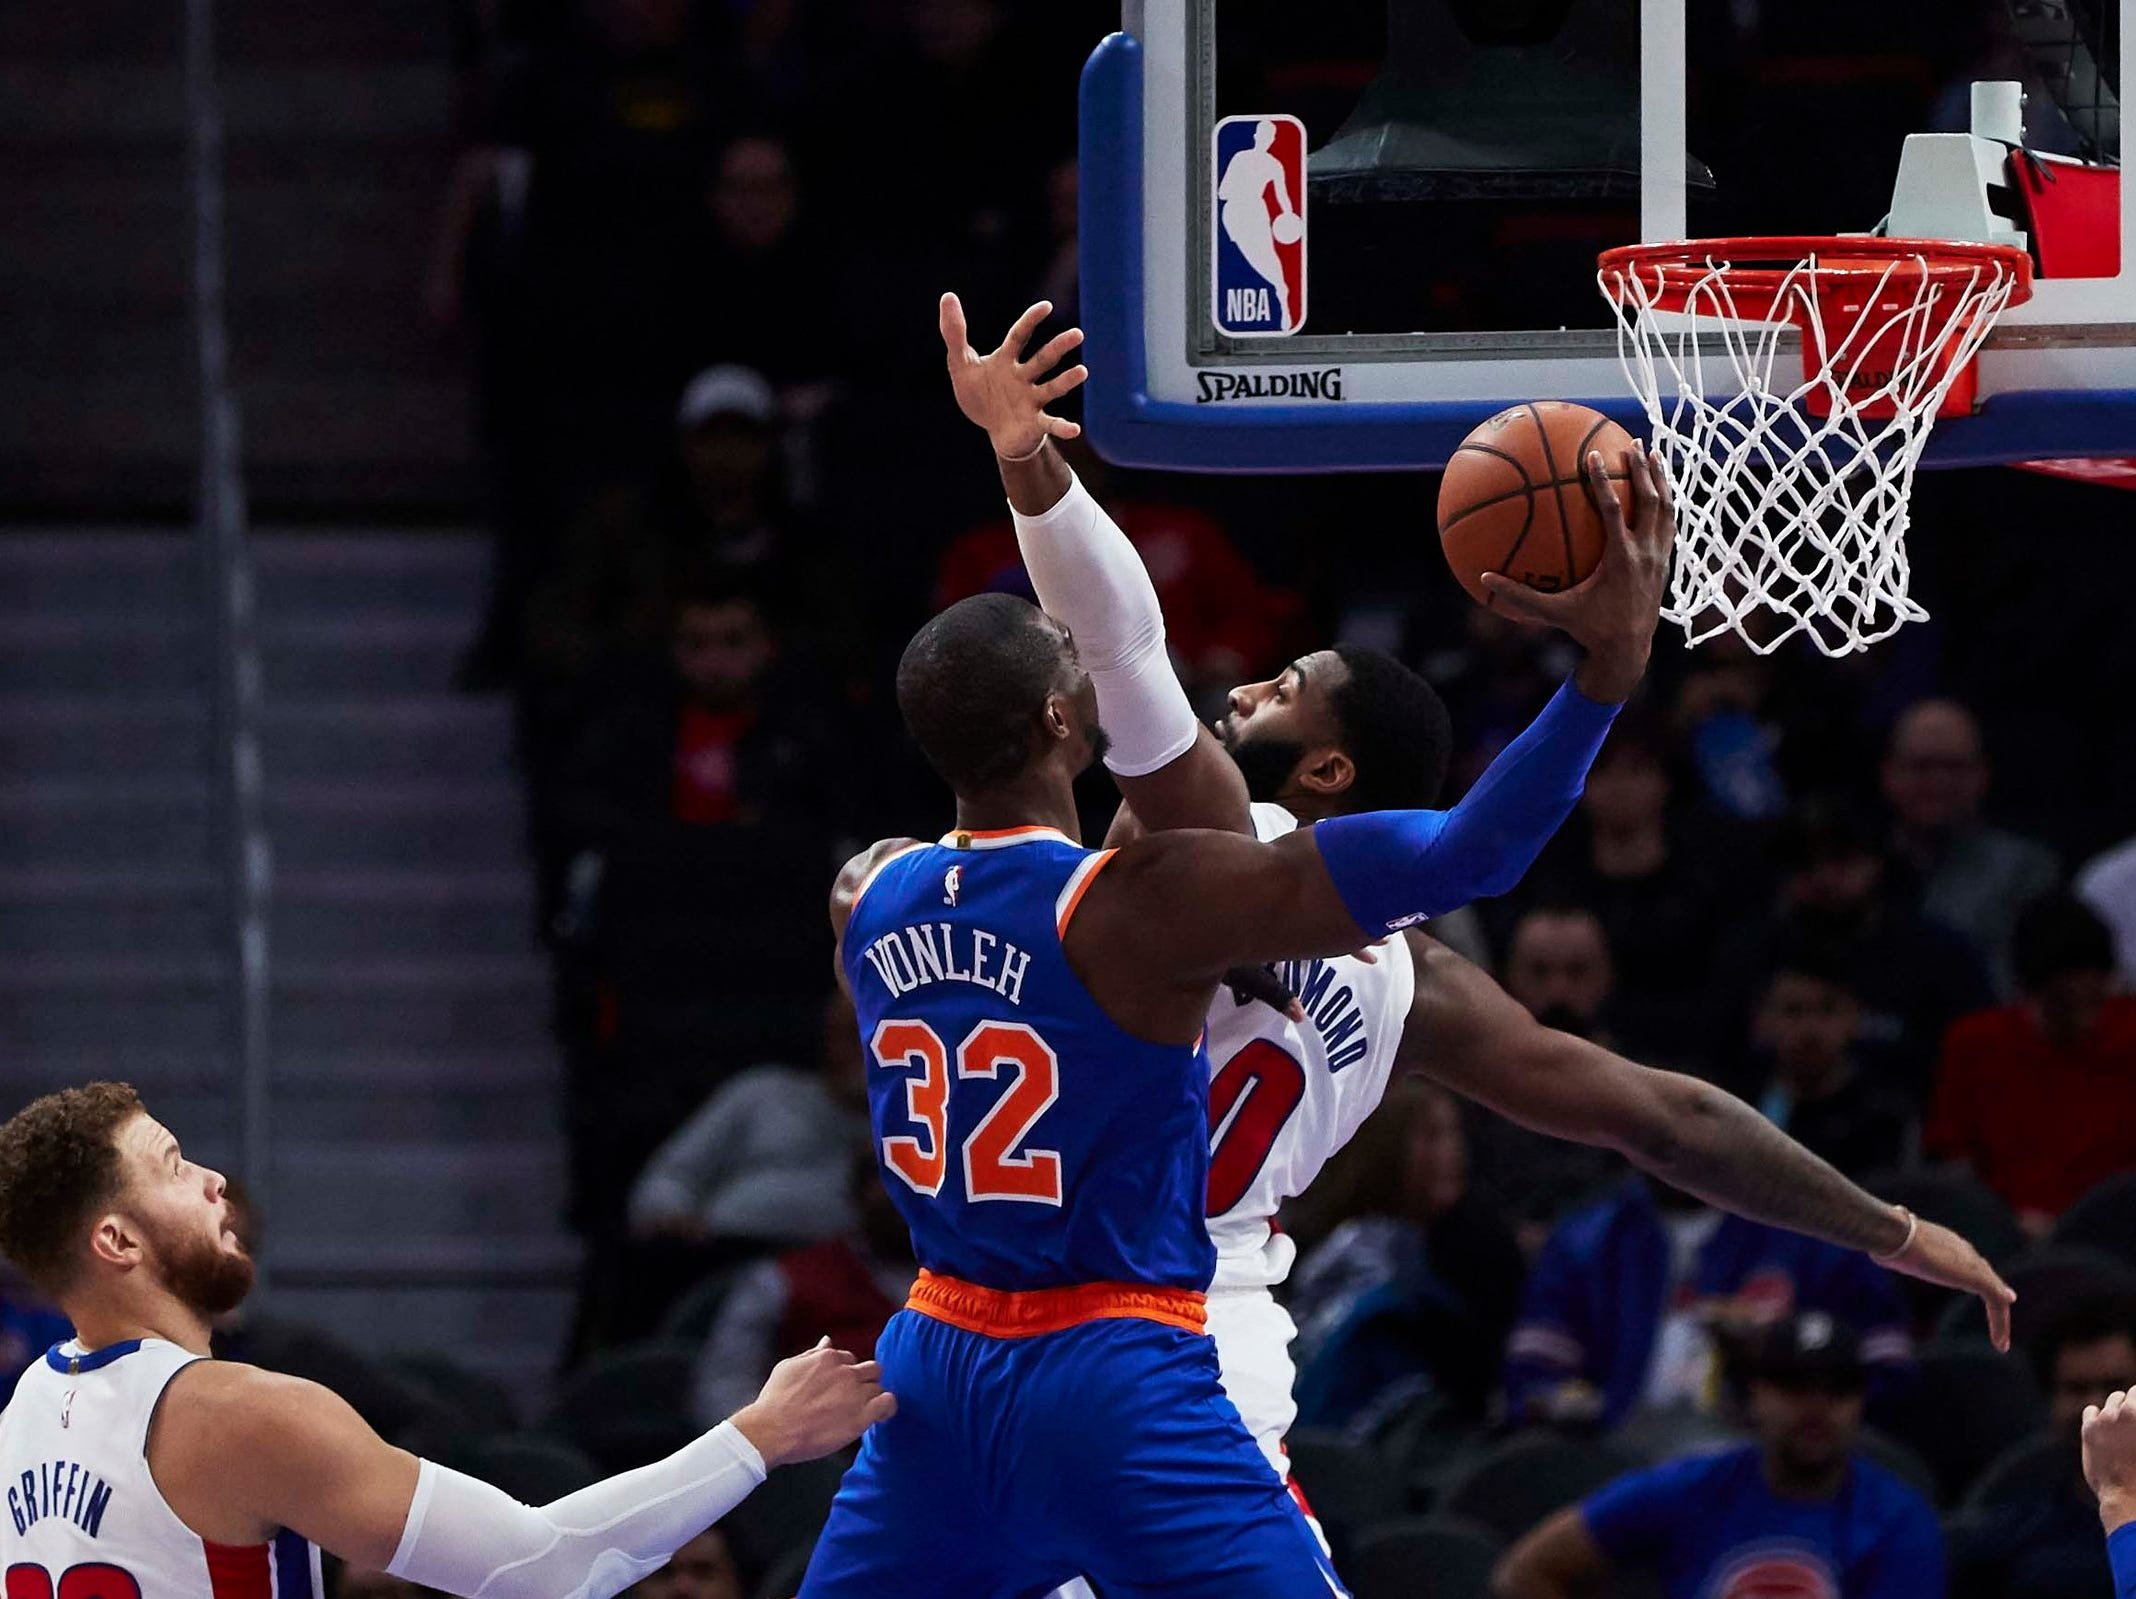 New York Knicks forward Noah Vonleh (32) shoots on Detroit Pistons center Andre Drummond (0) in the first half at Little Caesars Arena.